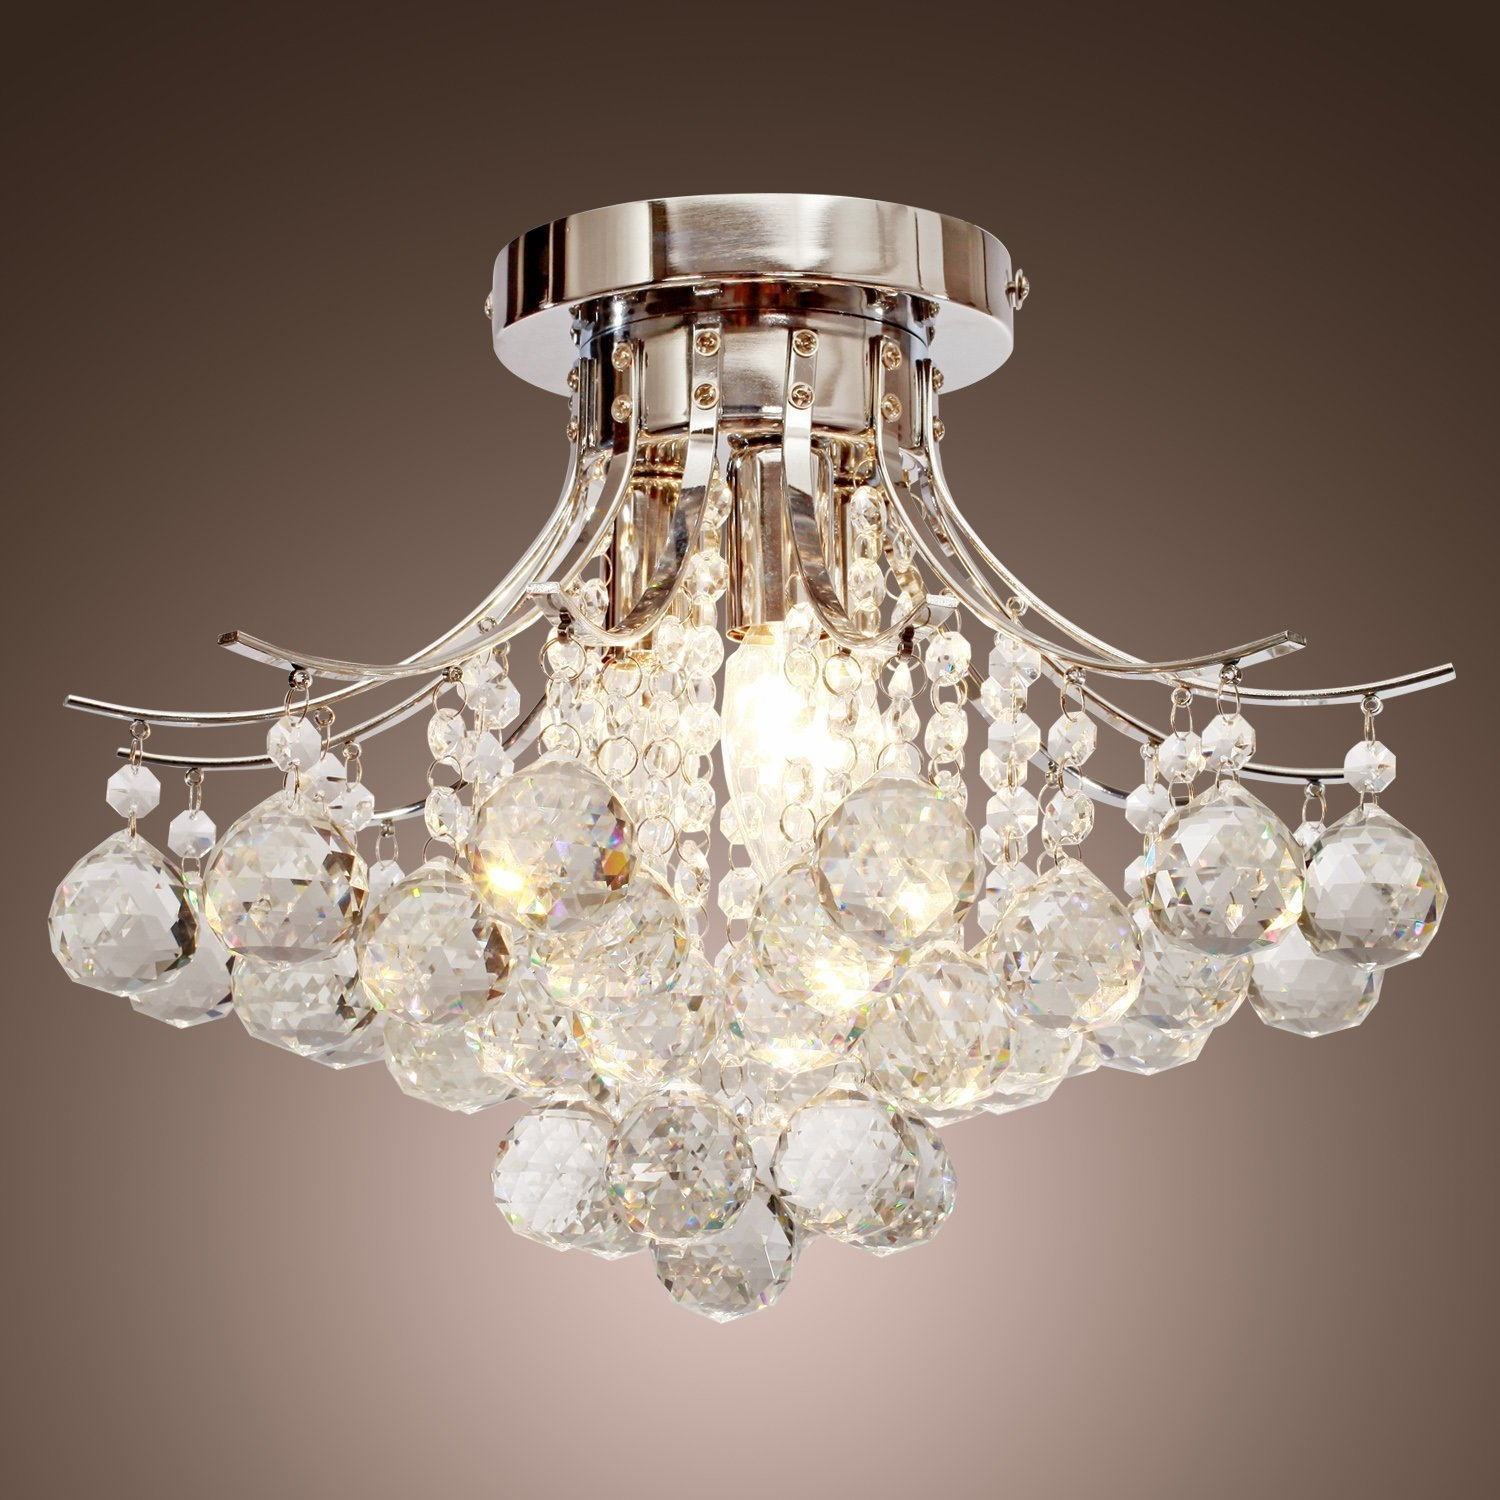 Chandeliers Amazon Lighting Ceiling Fans Ceiling Lights For Short Chandelier (#3 of 12)